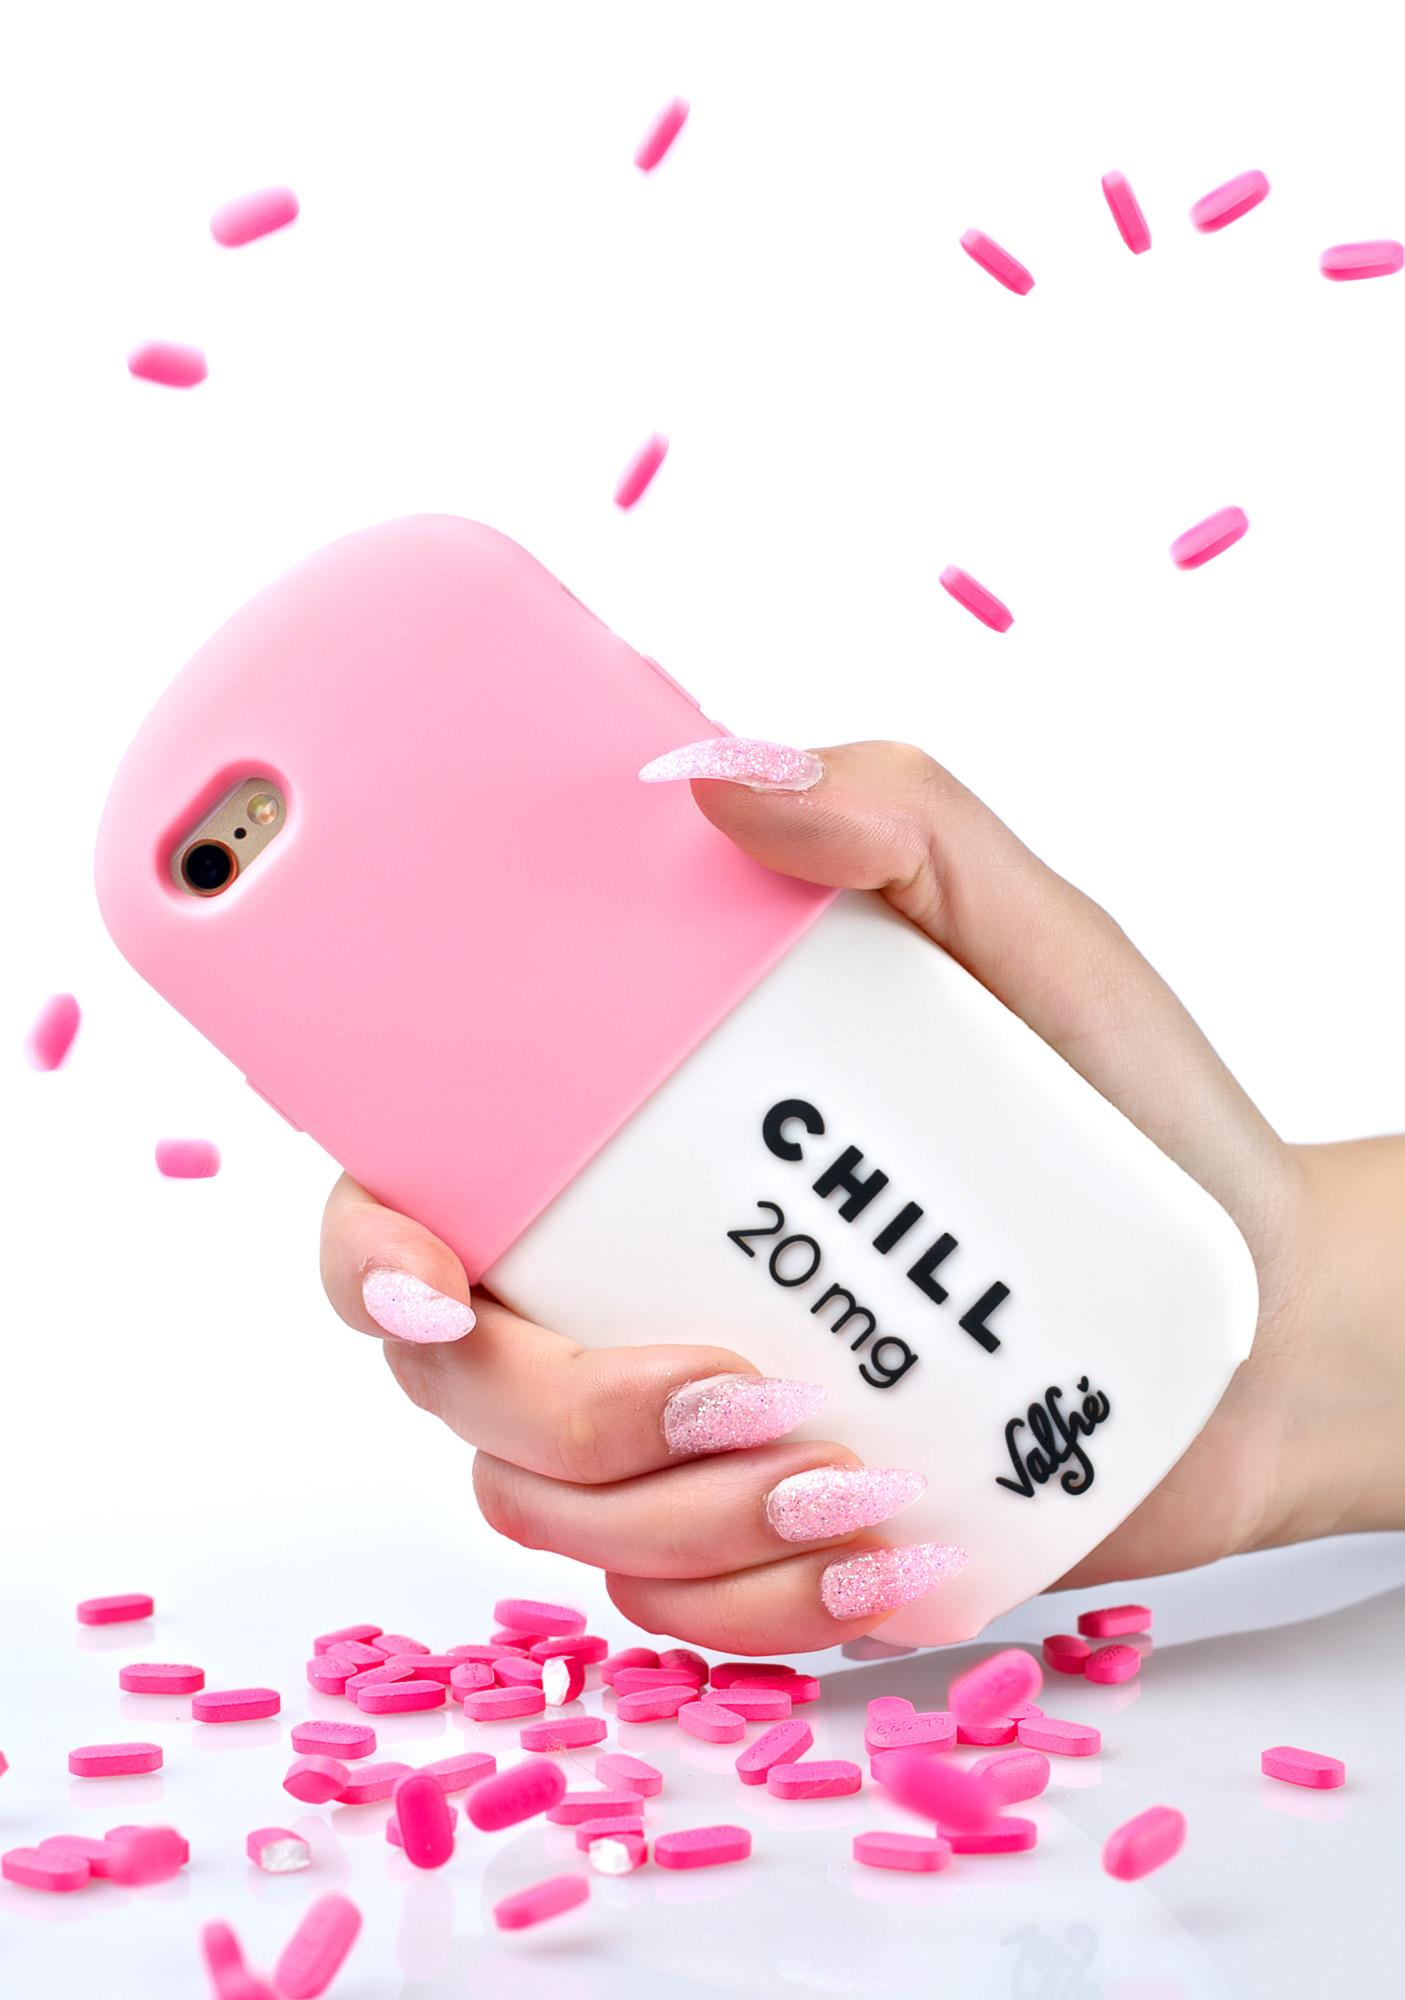 Valfré Chill Pill 3D iPhone 6/6+ Case